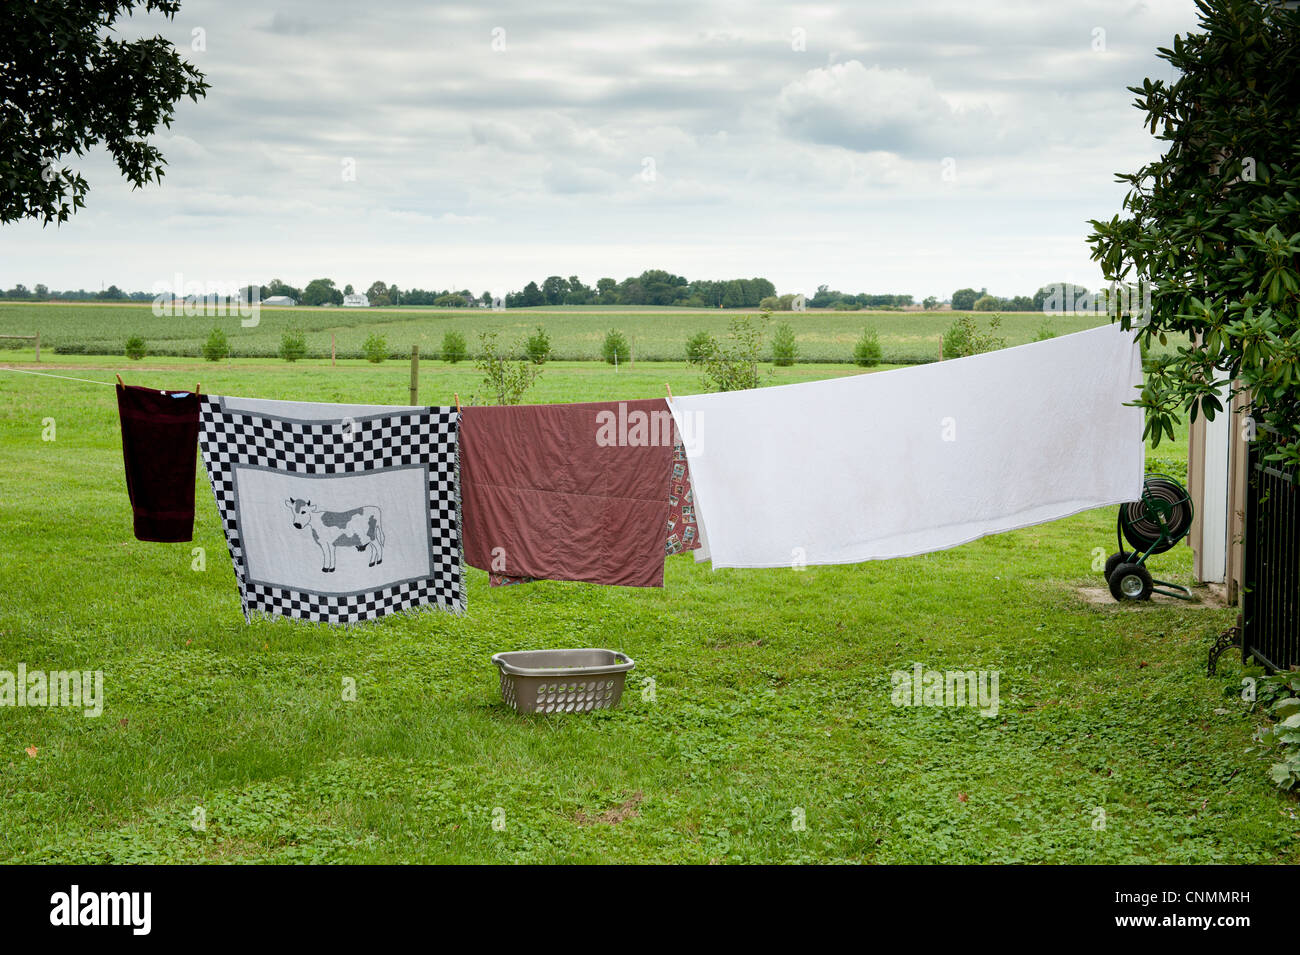 Linens hanging on a clothesline on a farm in Maryland - Stock Image